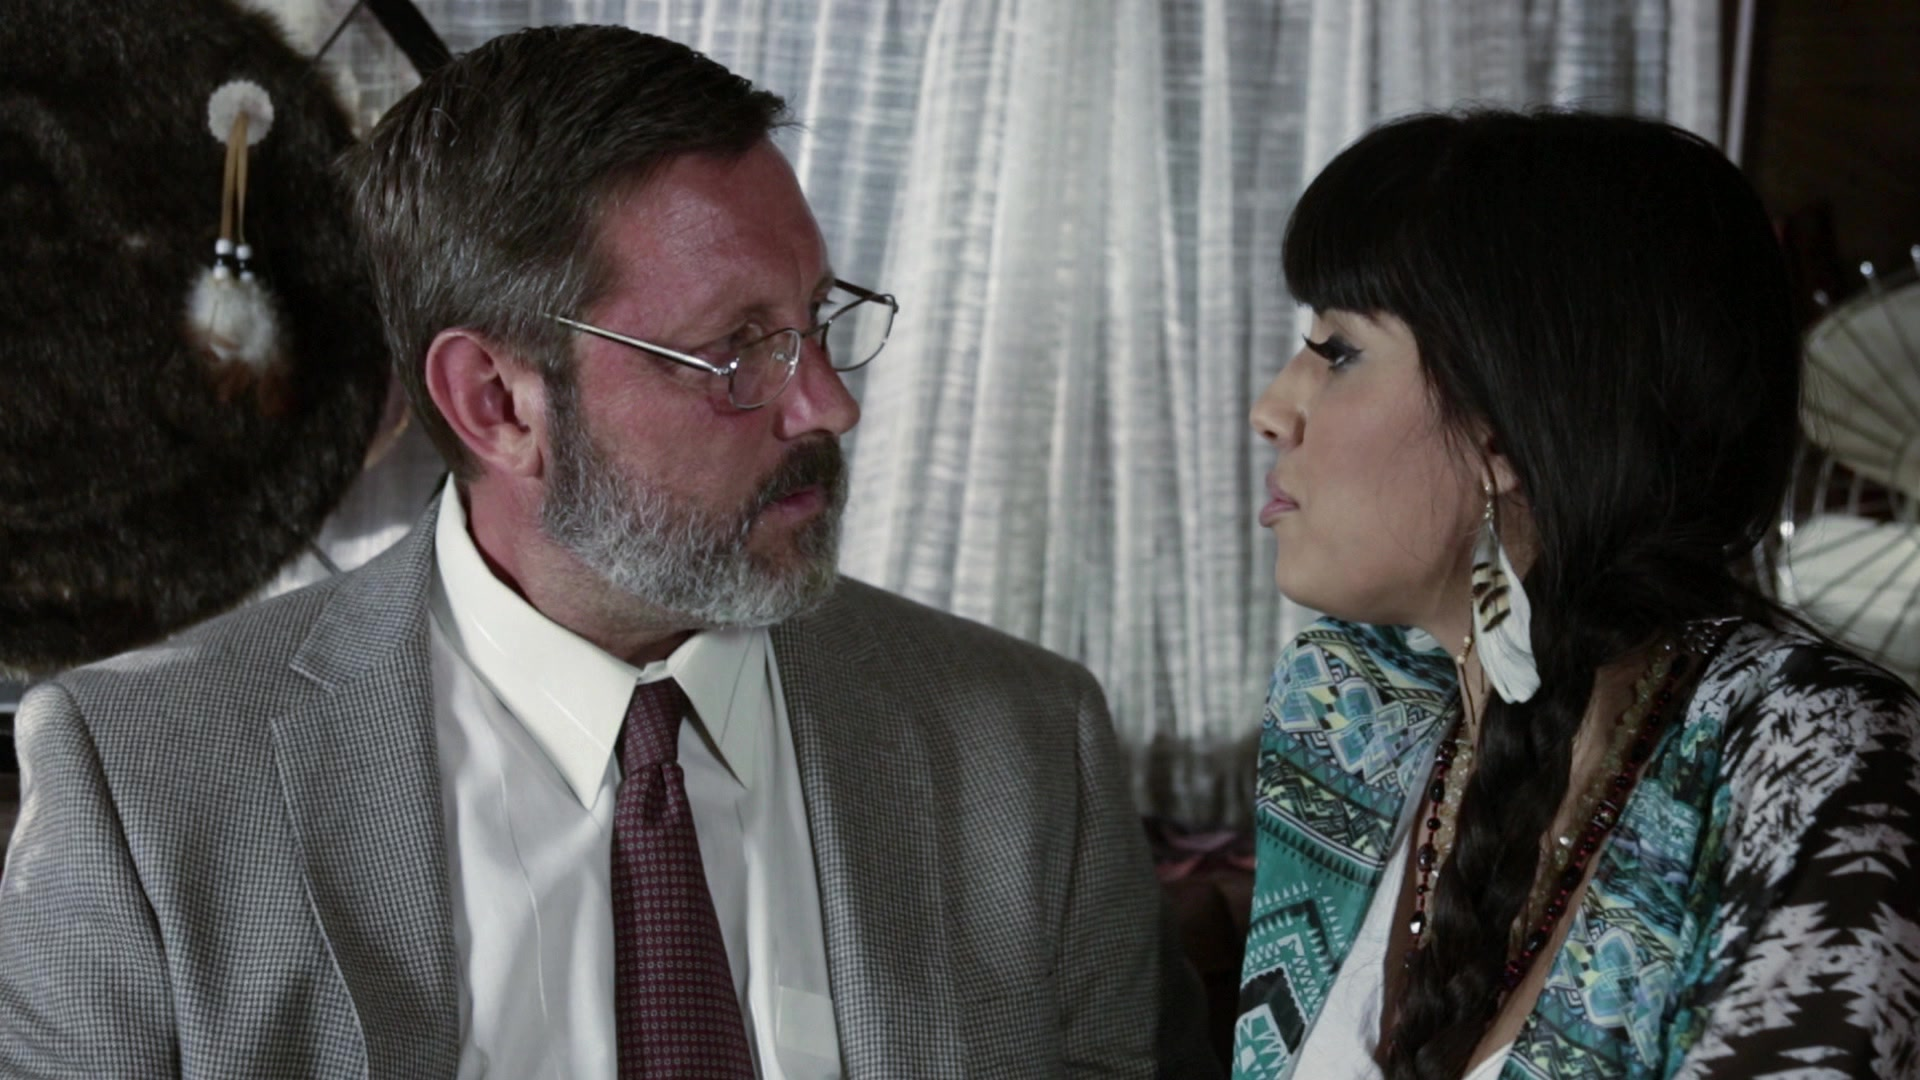 Scene with Brad Armstrong and Mercedes Carrera - image 4 out of 20